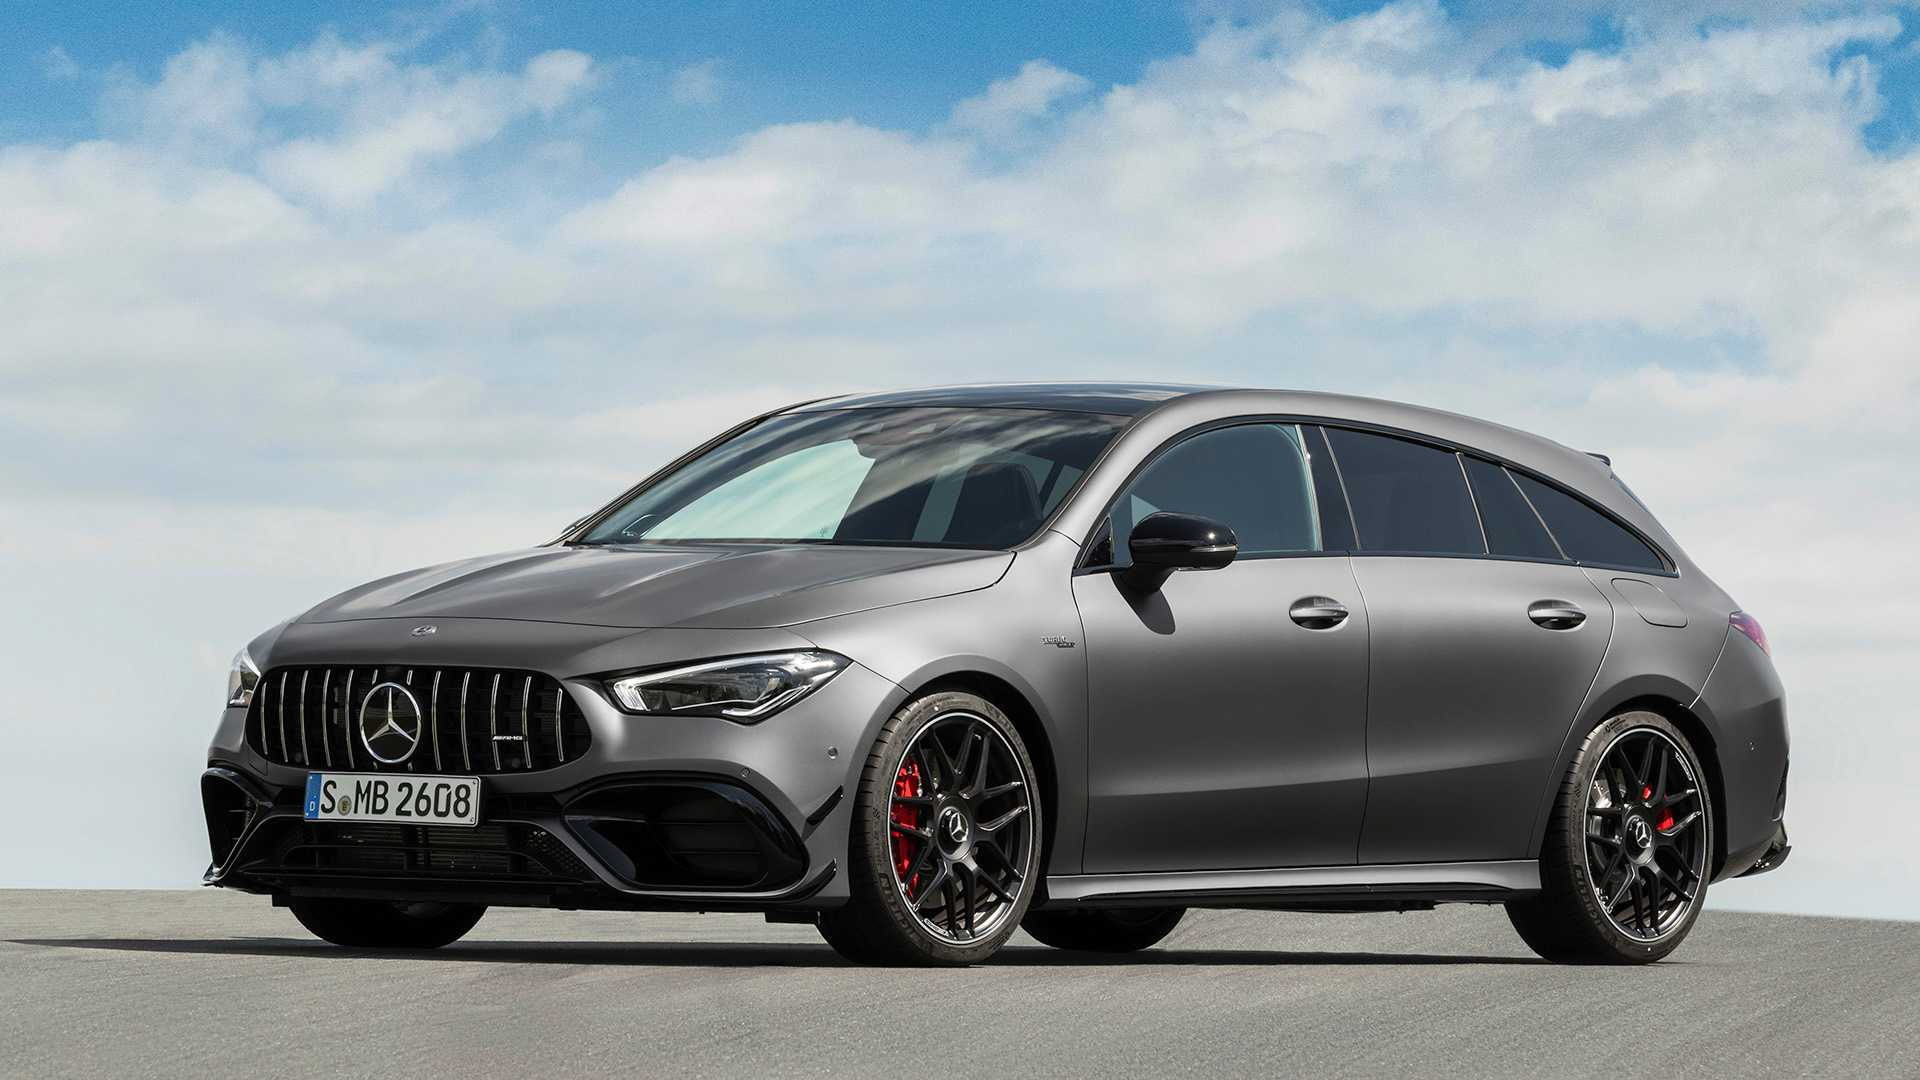 2020 Mercedes-AMG CLA 45 S 4MATIC+ Shooting Brake Front Three-Quarter Wallpapers (14)